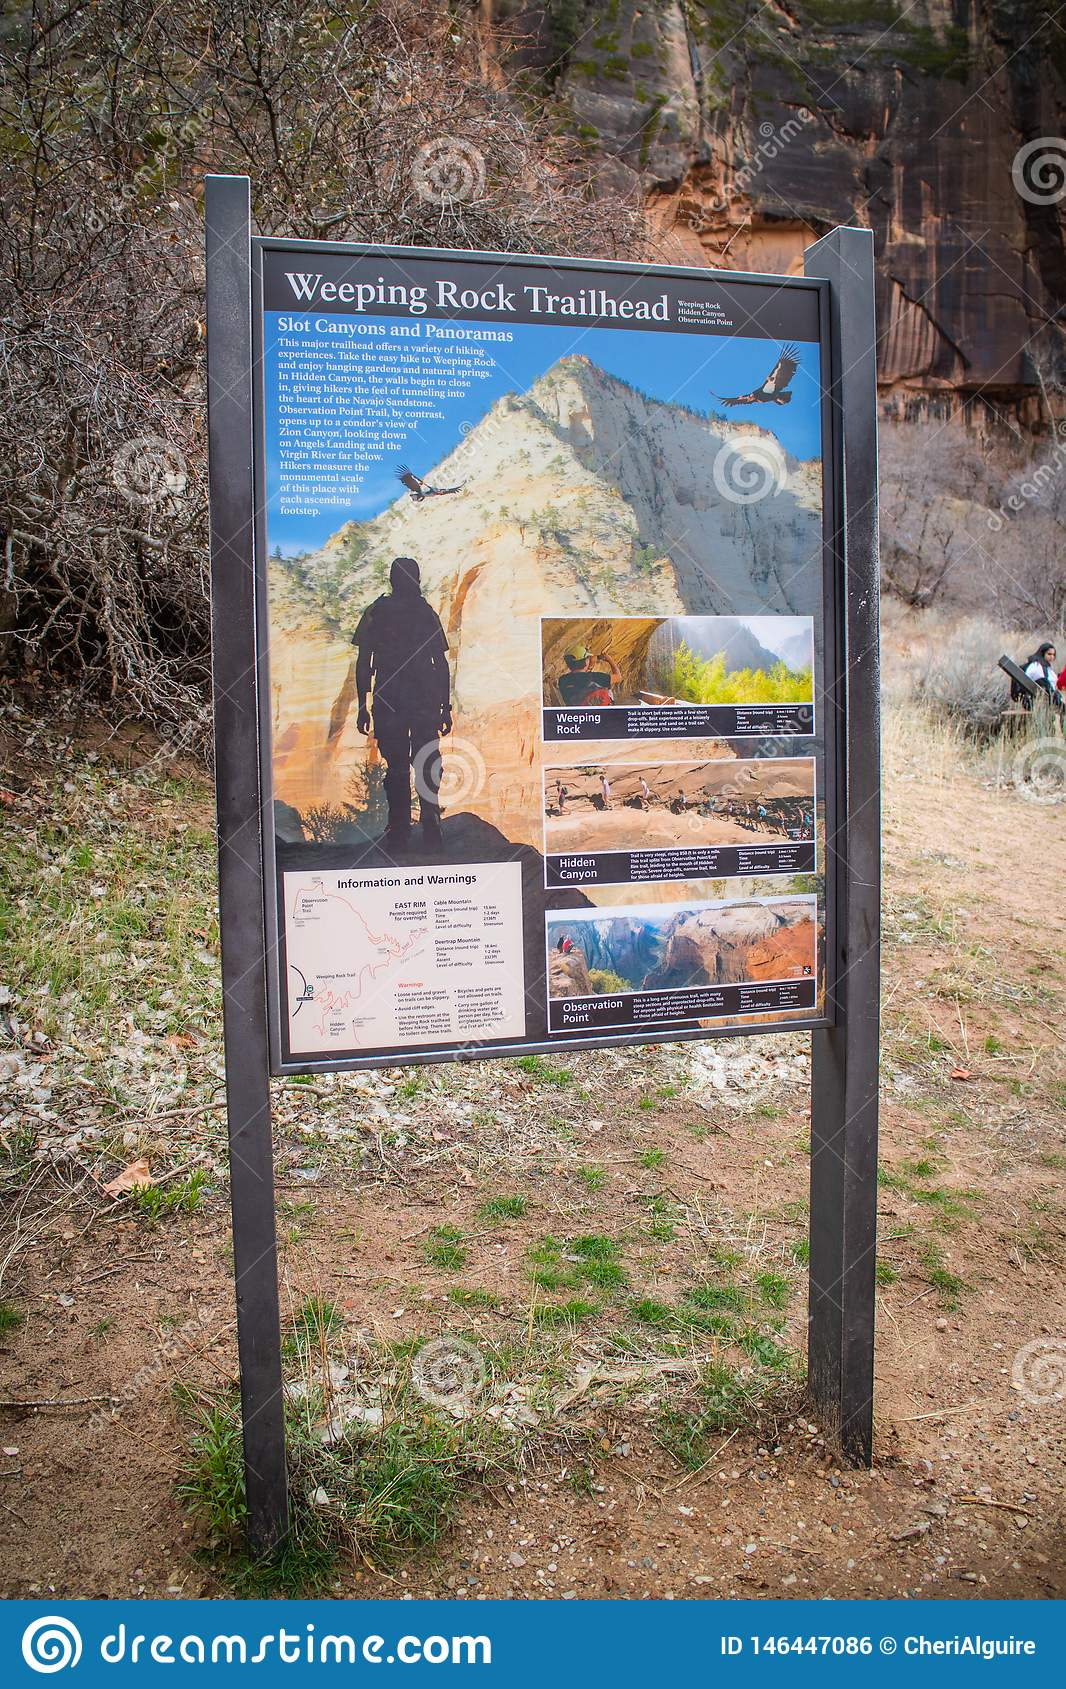 A description board for the trail in Zion National Park, Utah